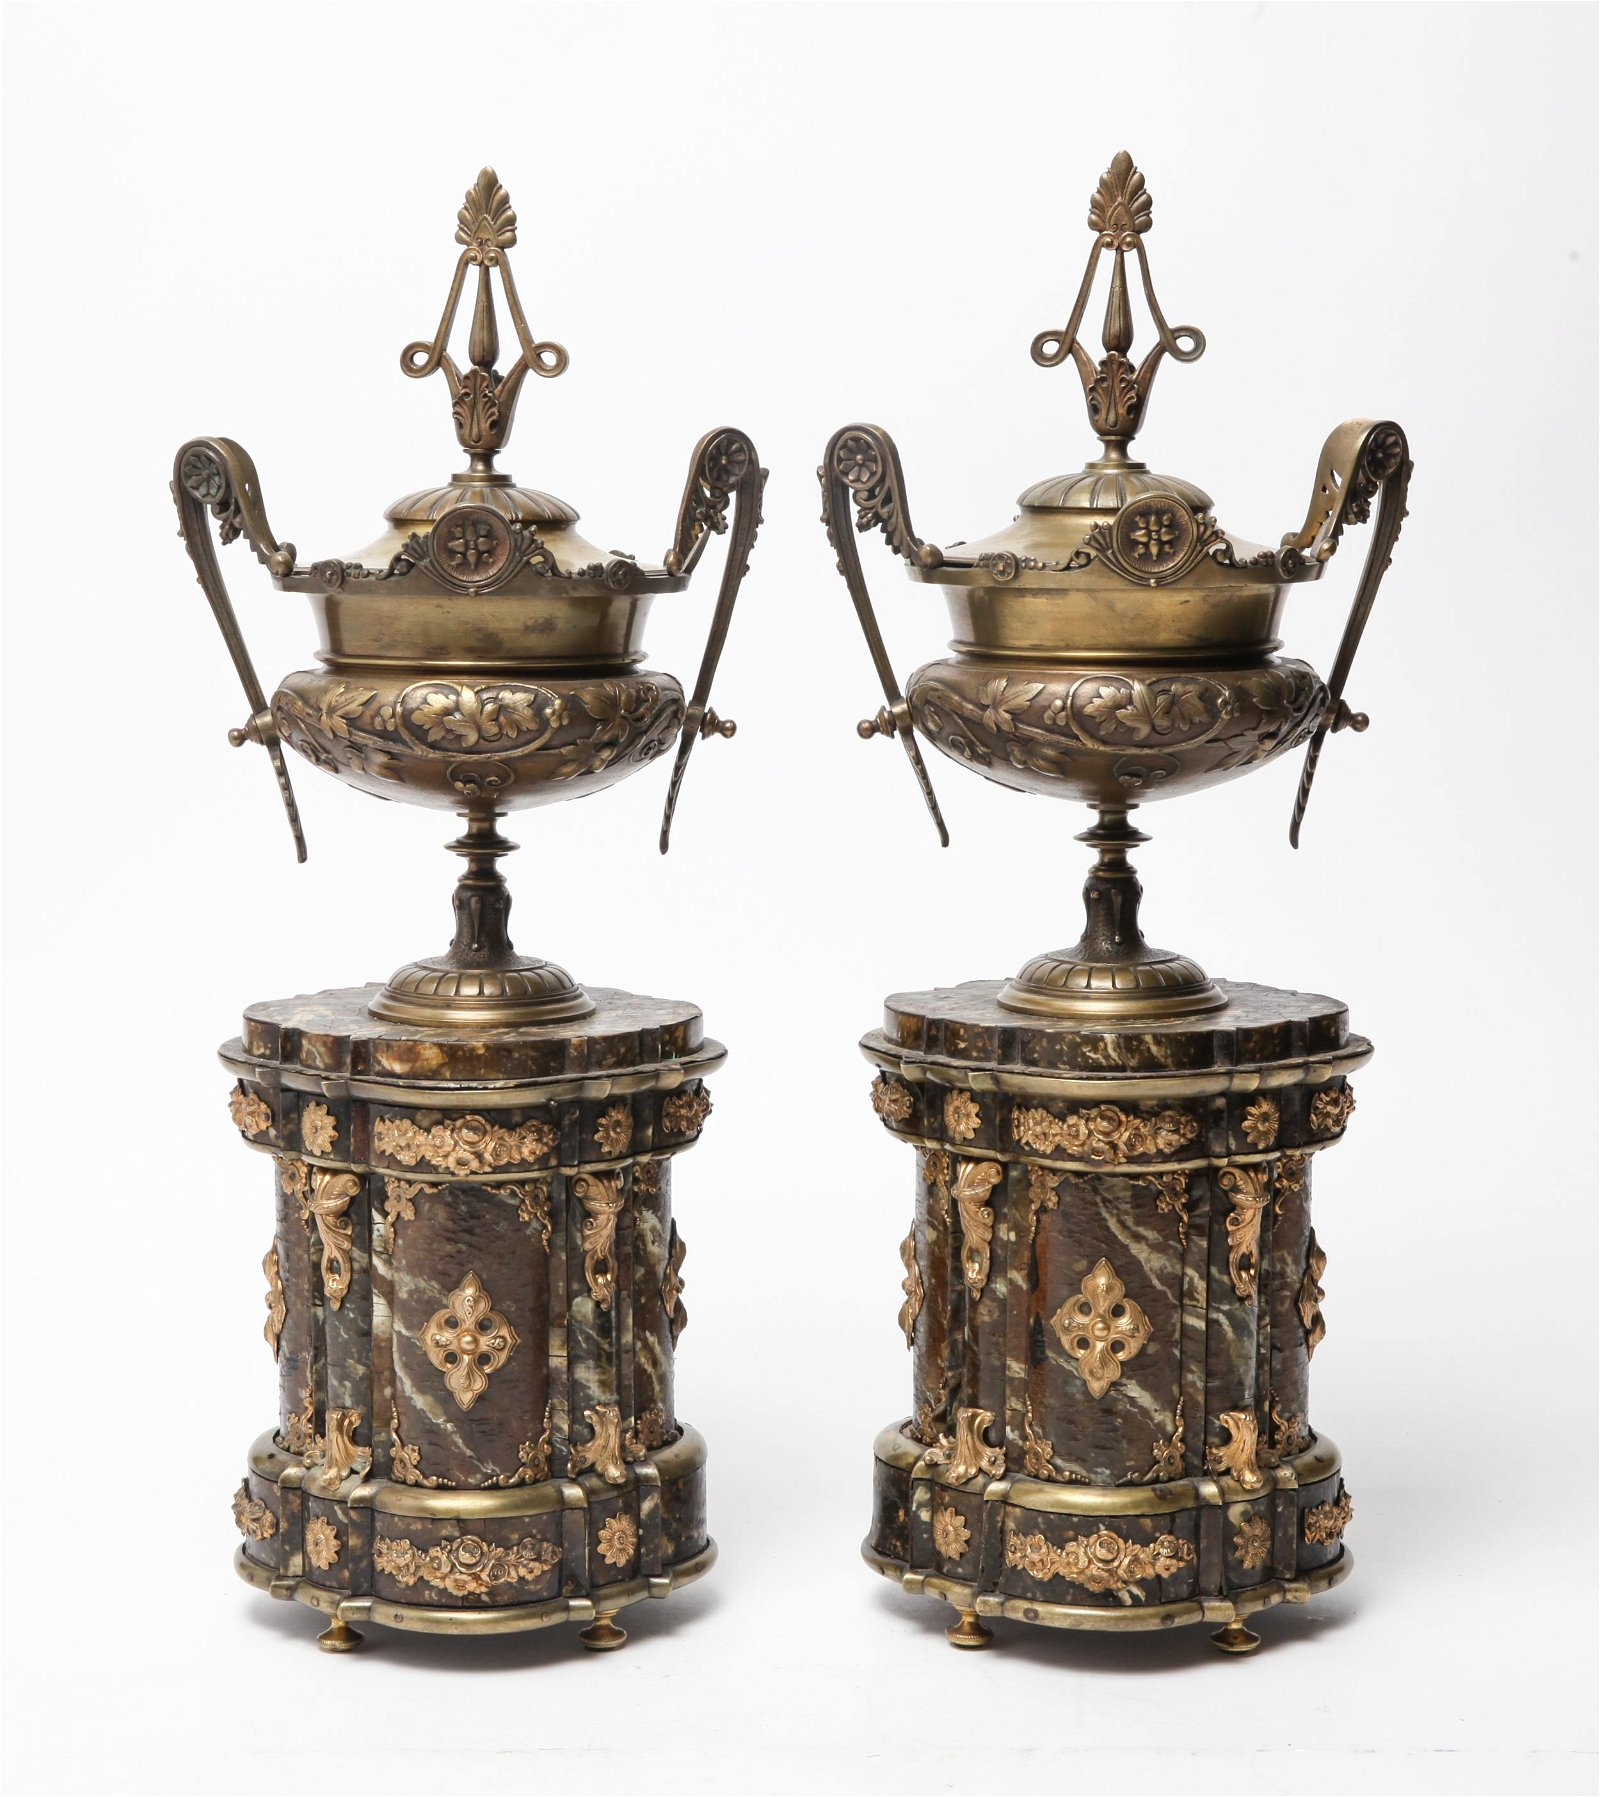 Pair of Gilt Metal Urns on Faux Marble Bases